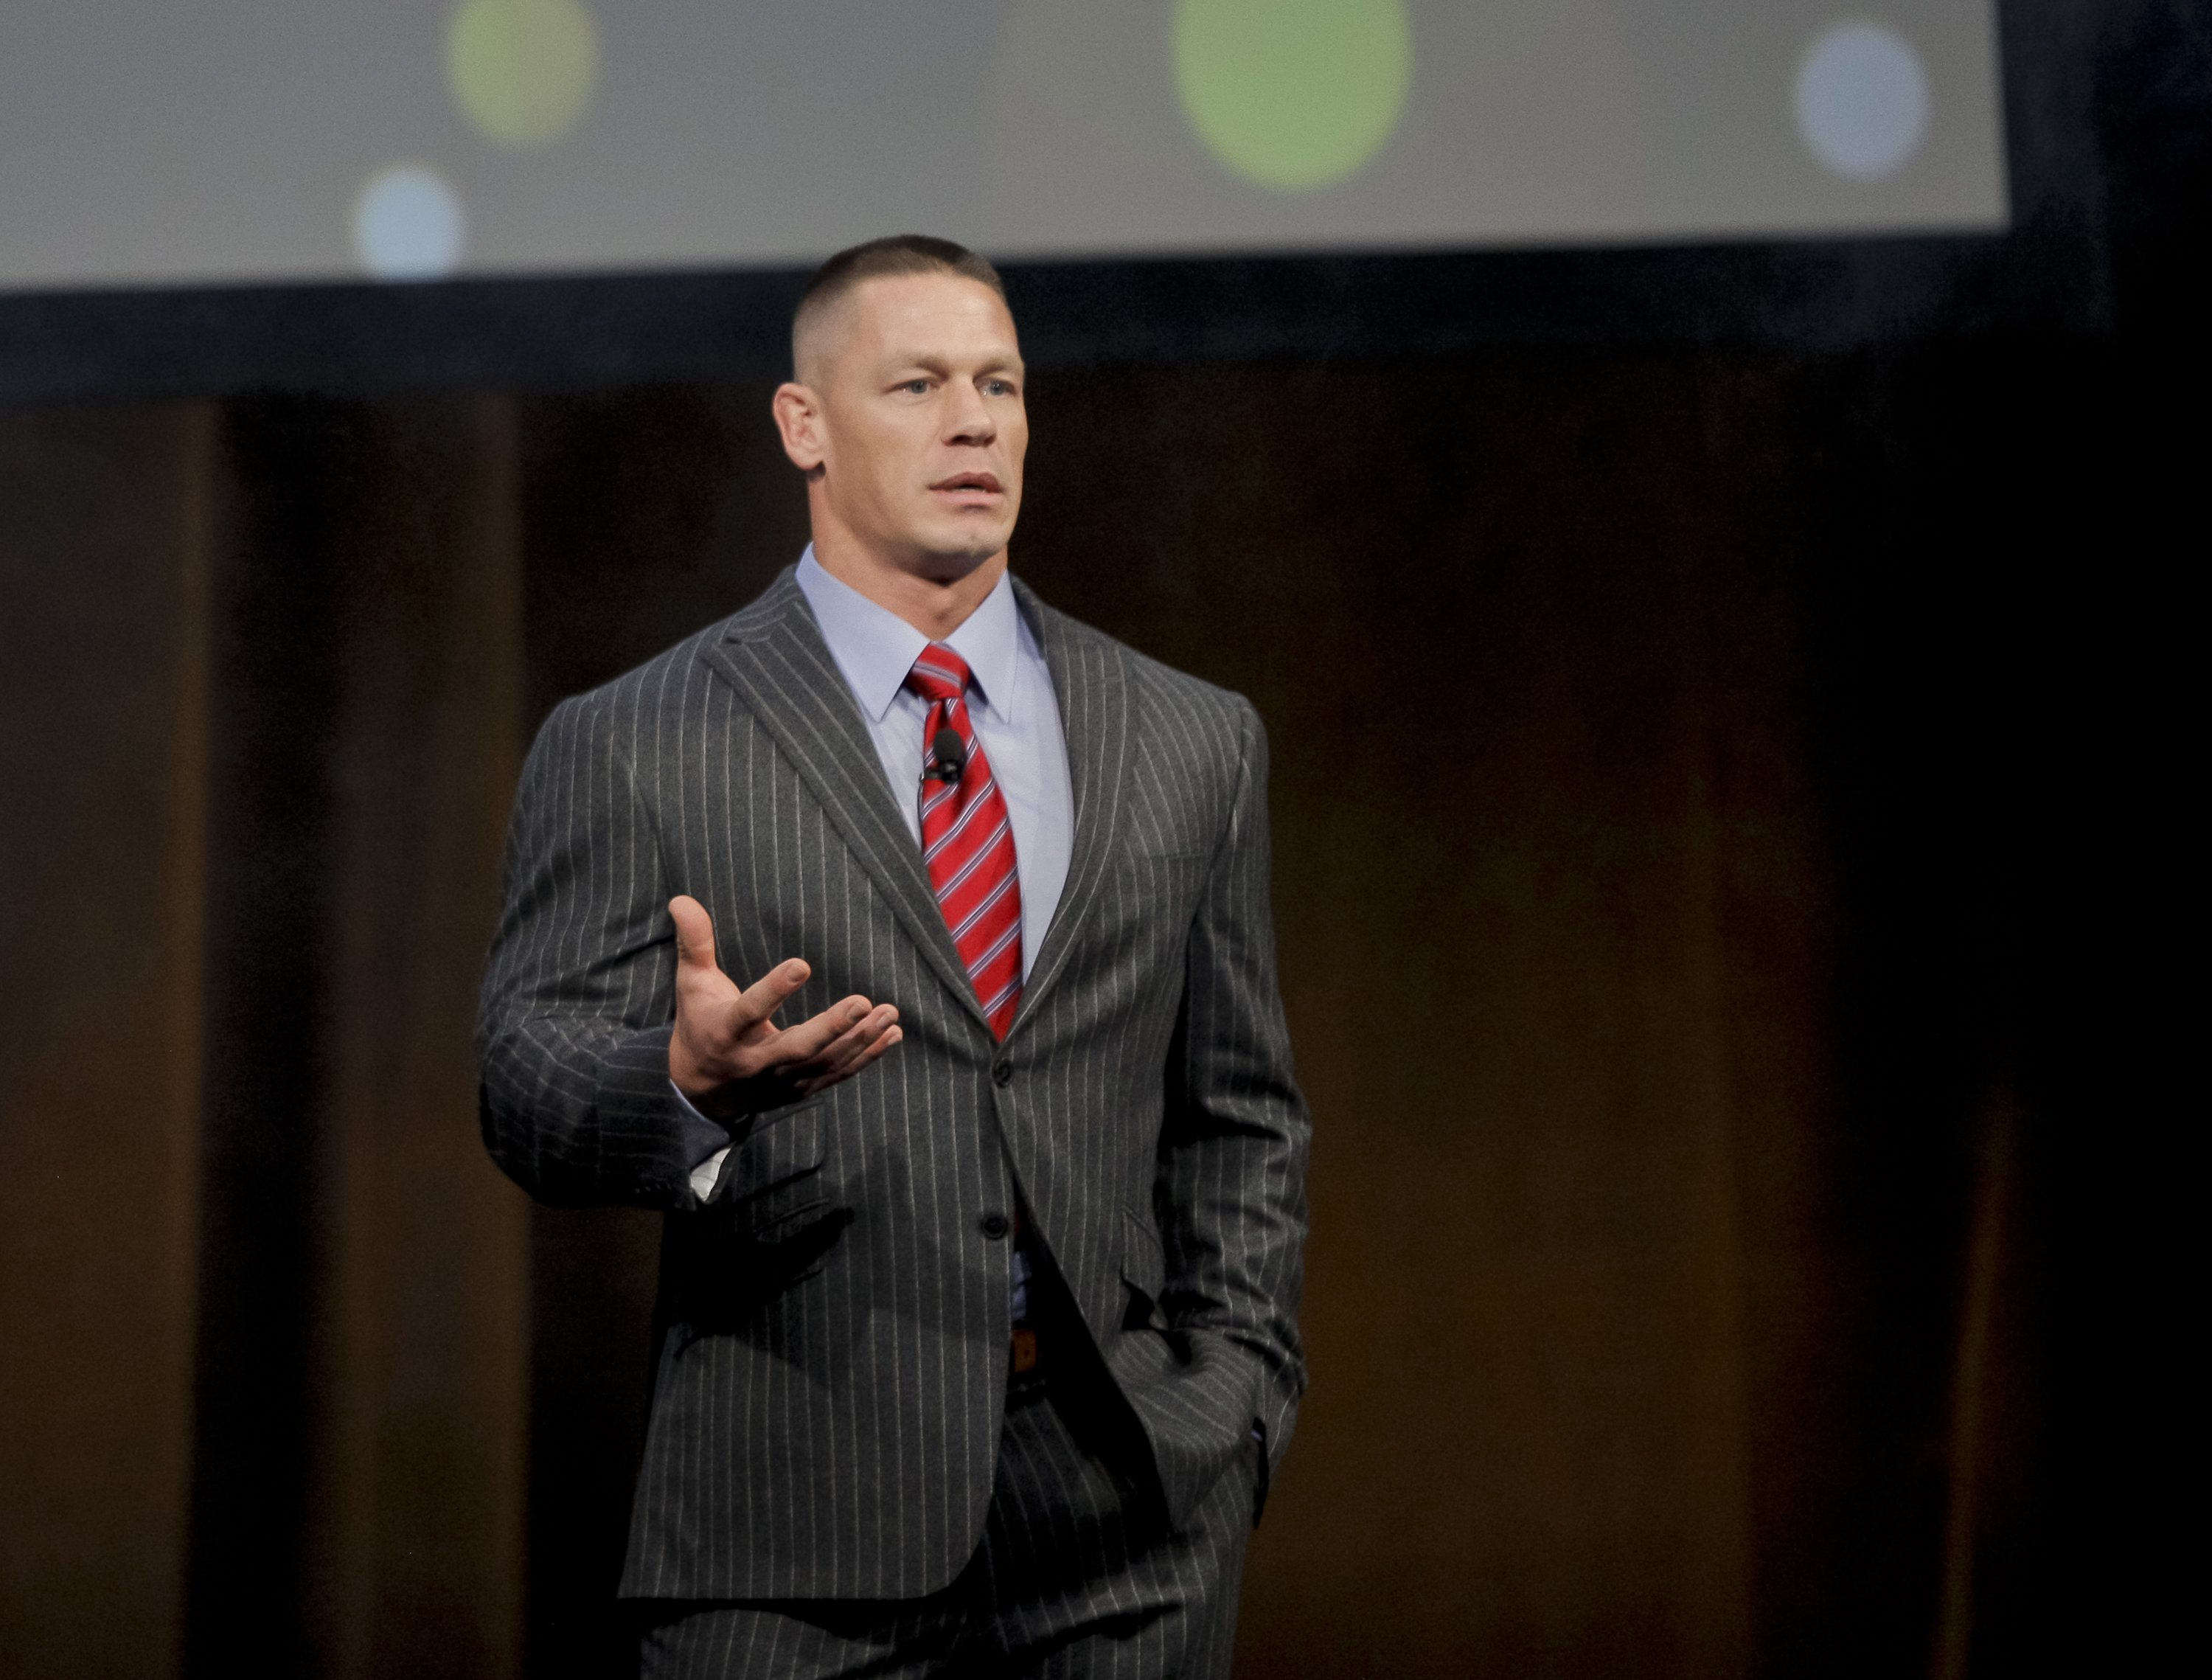 John Cena speaks during the final day luncheon and special program 'Amazon Studiosat Caesars Palace during CinemaCon on March 30, 2017, in Las Vegas, Nevada. | Source: Getty Images.